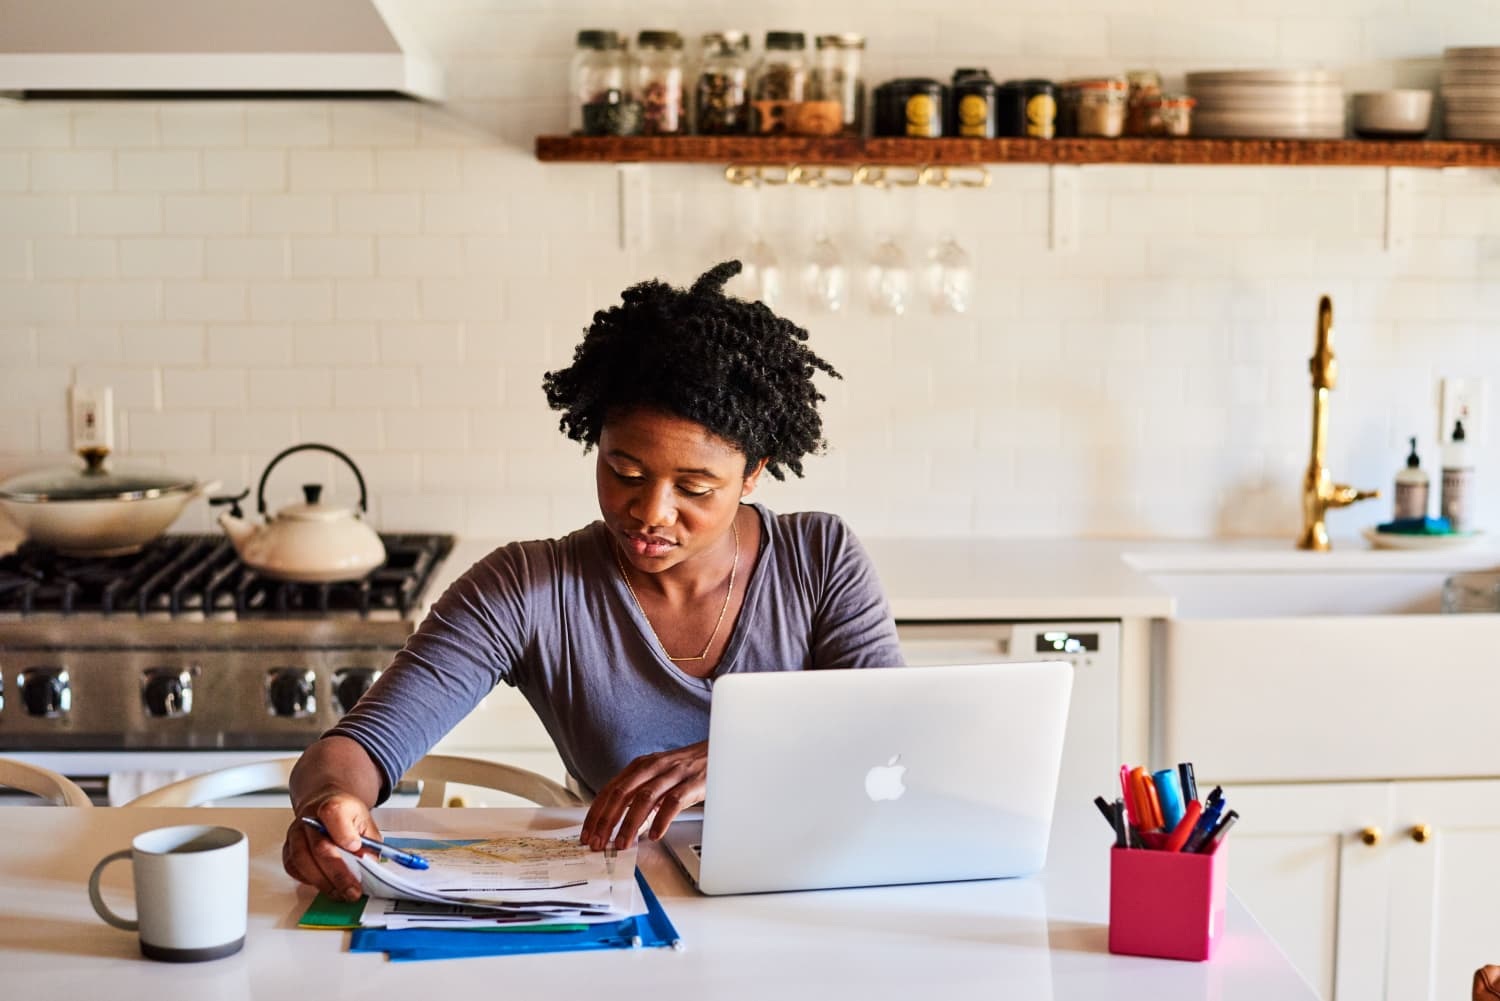 This Is the Biggest Problem With Working From Home, According to Remote Workers